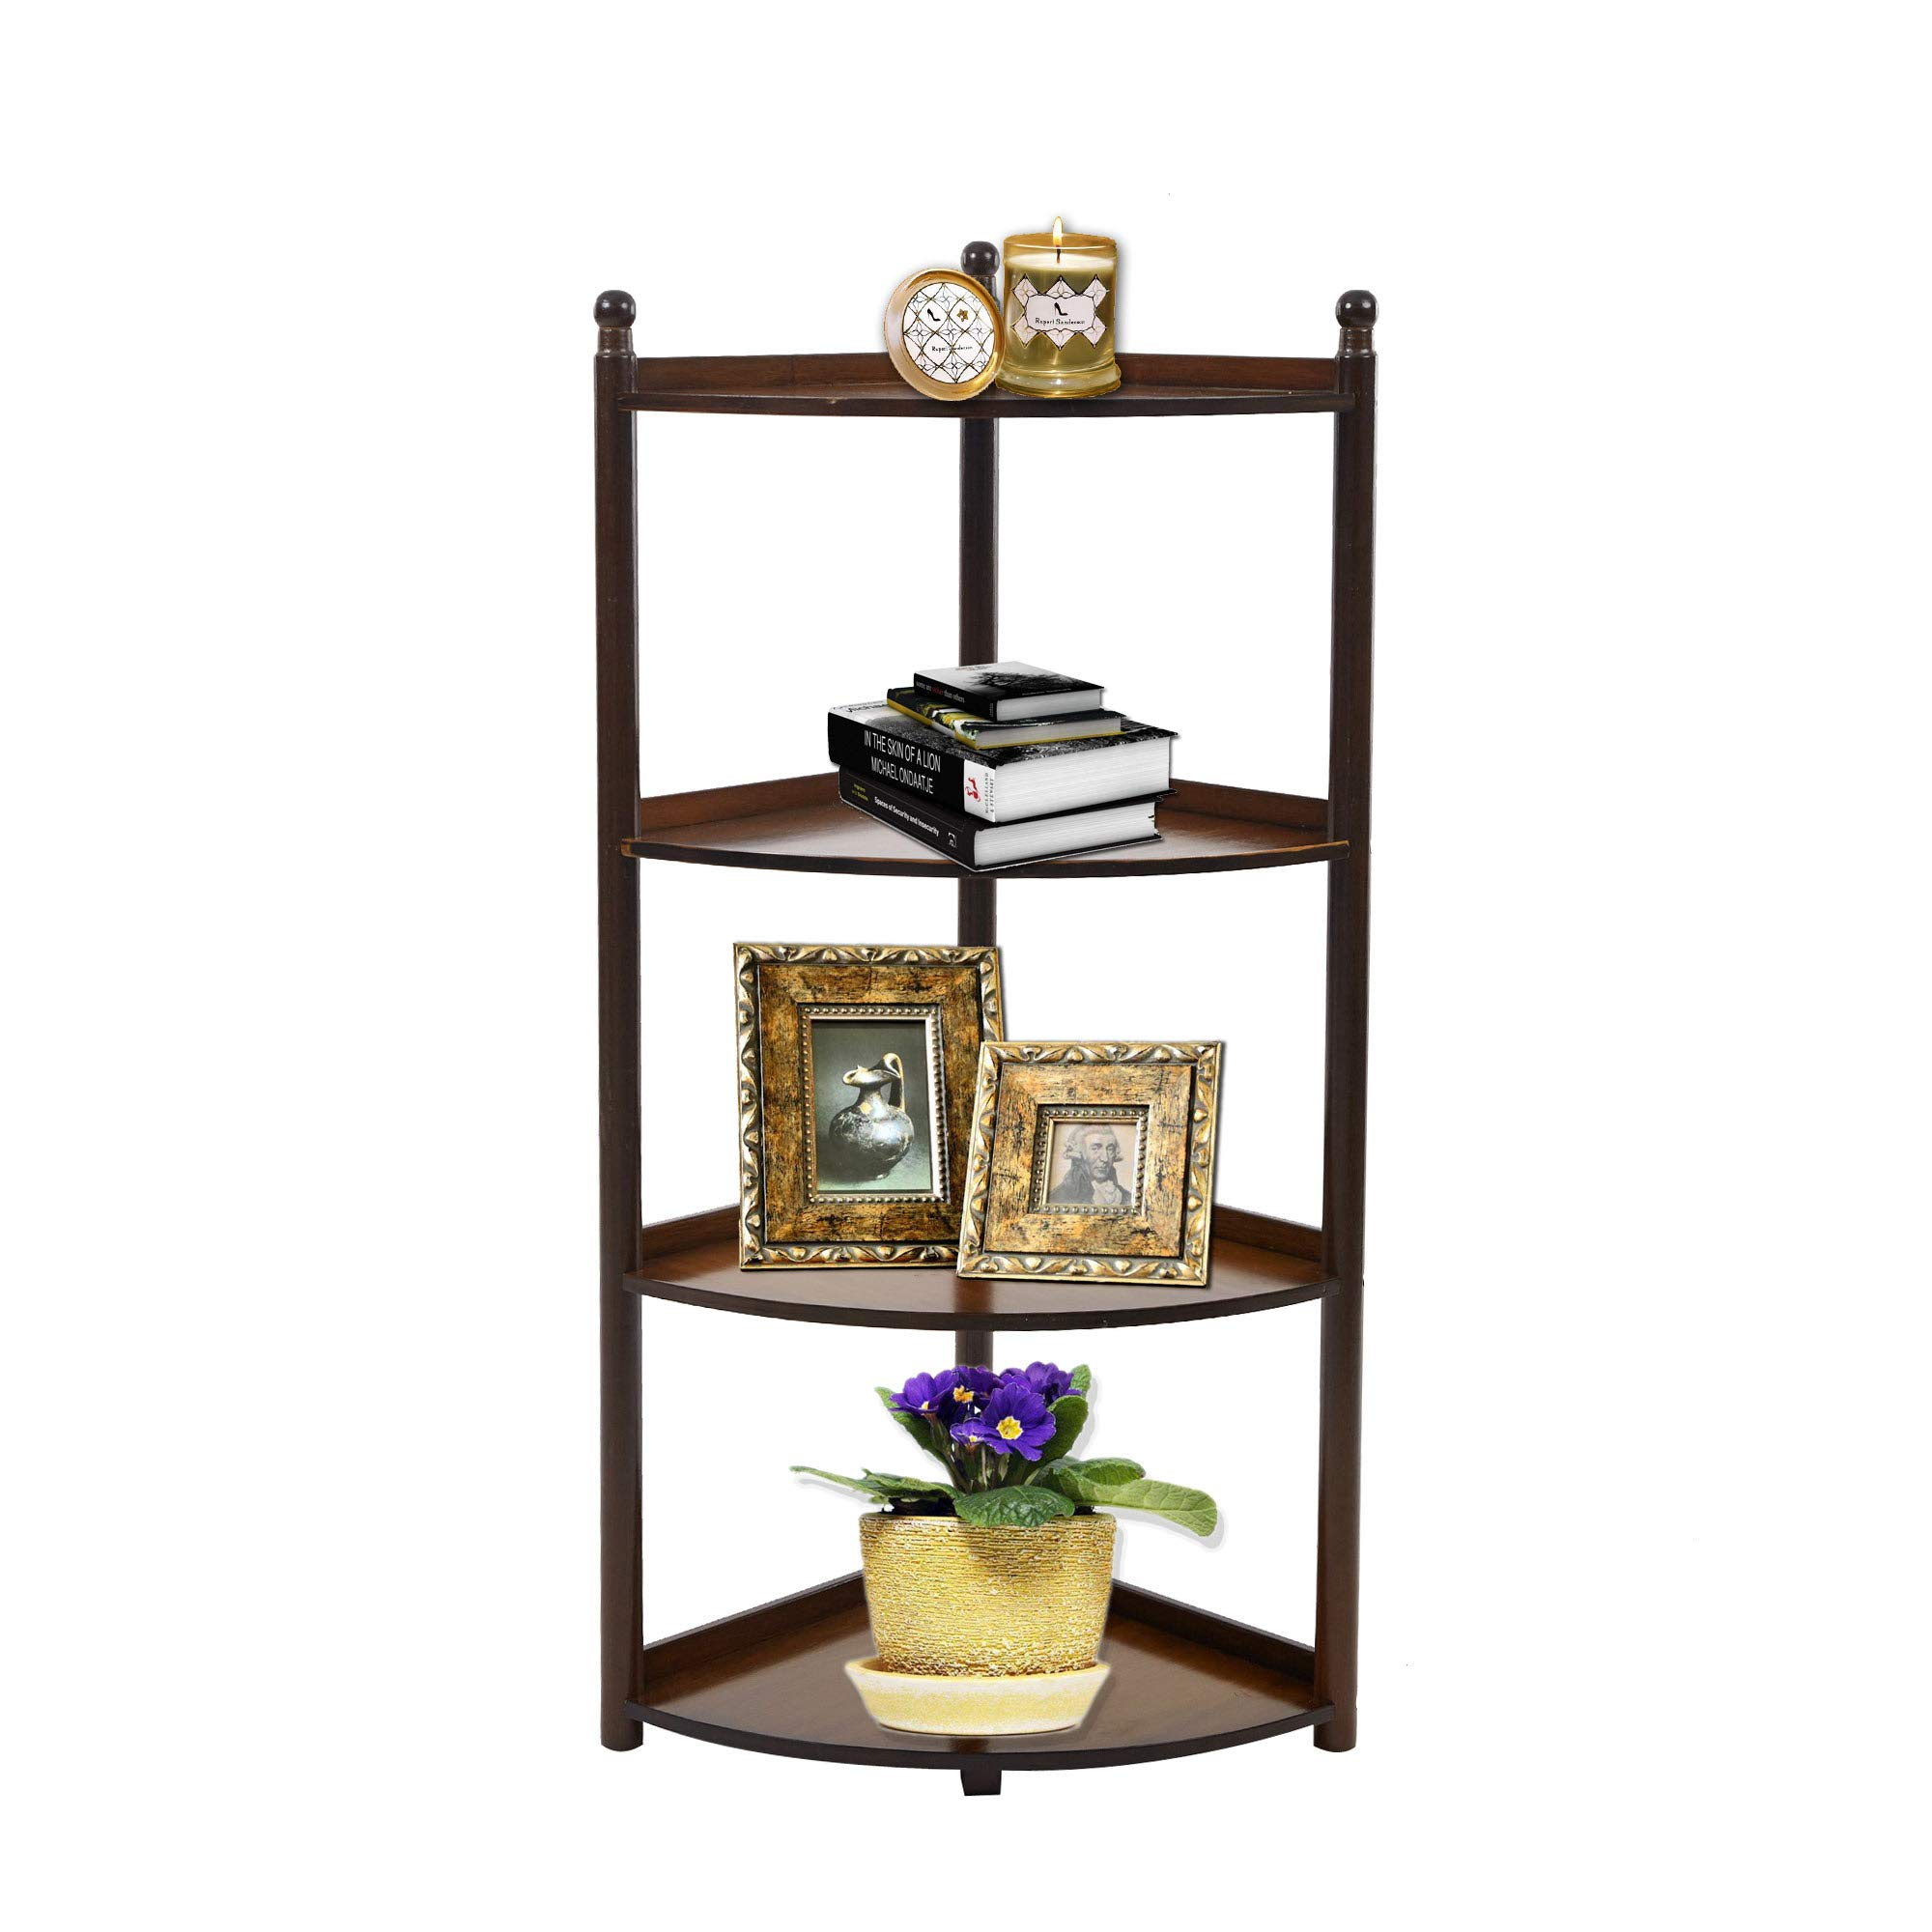 Dporticus 4 Tier Bamboo Wall Corner Shelf Display Stand Freestanding Modular Shelving Bookcase Shelf Home Furniture Cherry 39 Inch